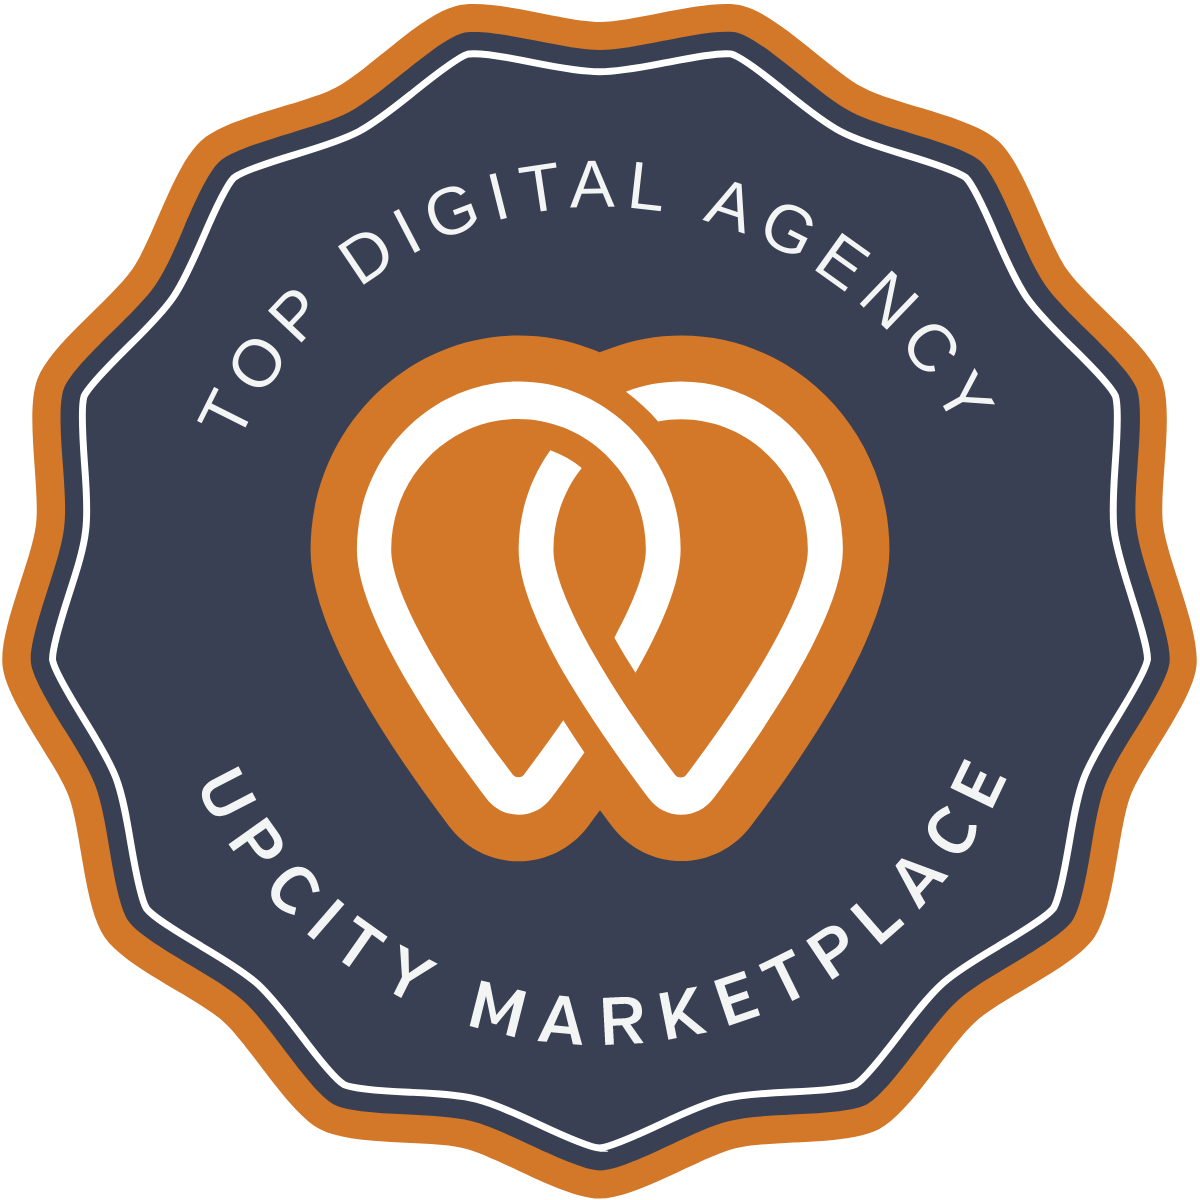 Top Digital Agency - UpCity